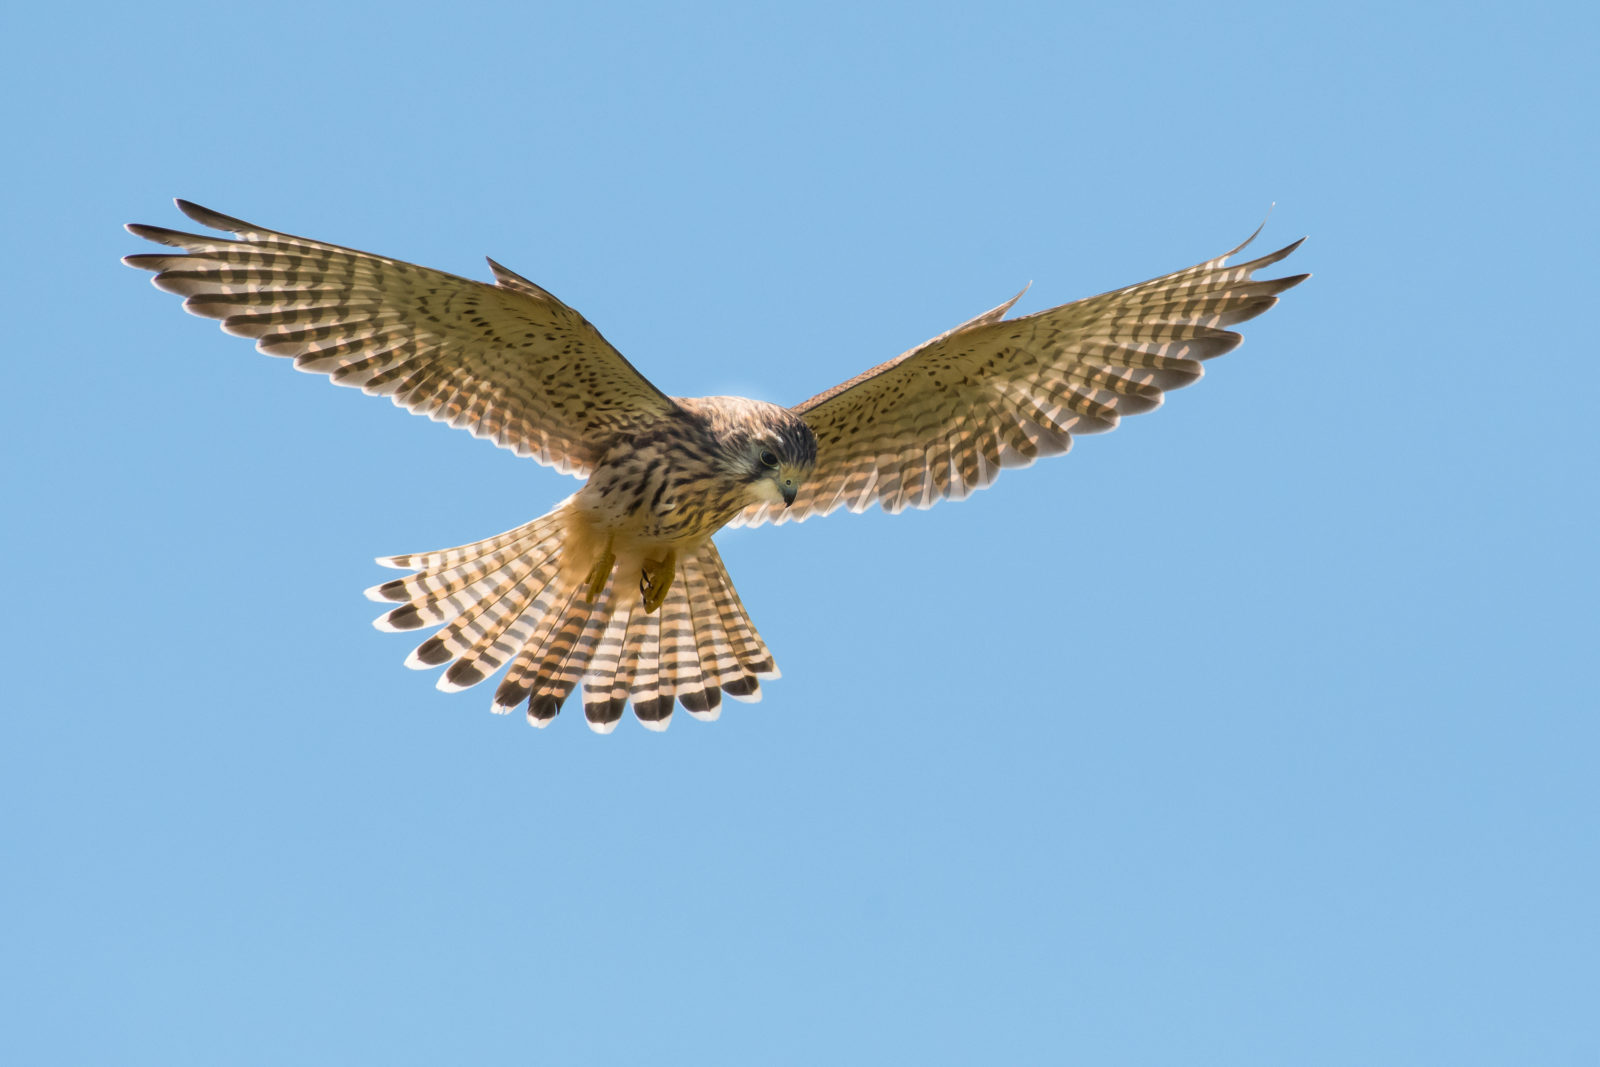 Kestrel hunting in the Midday sun